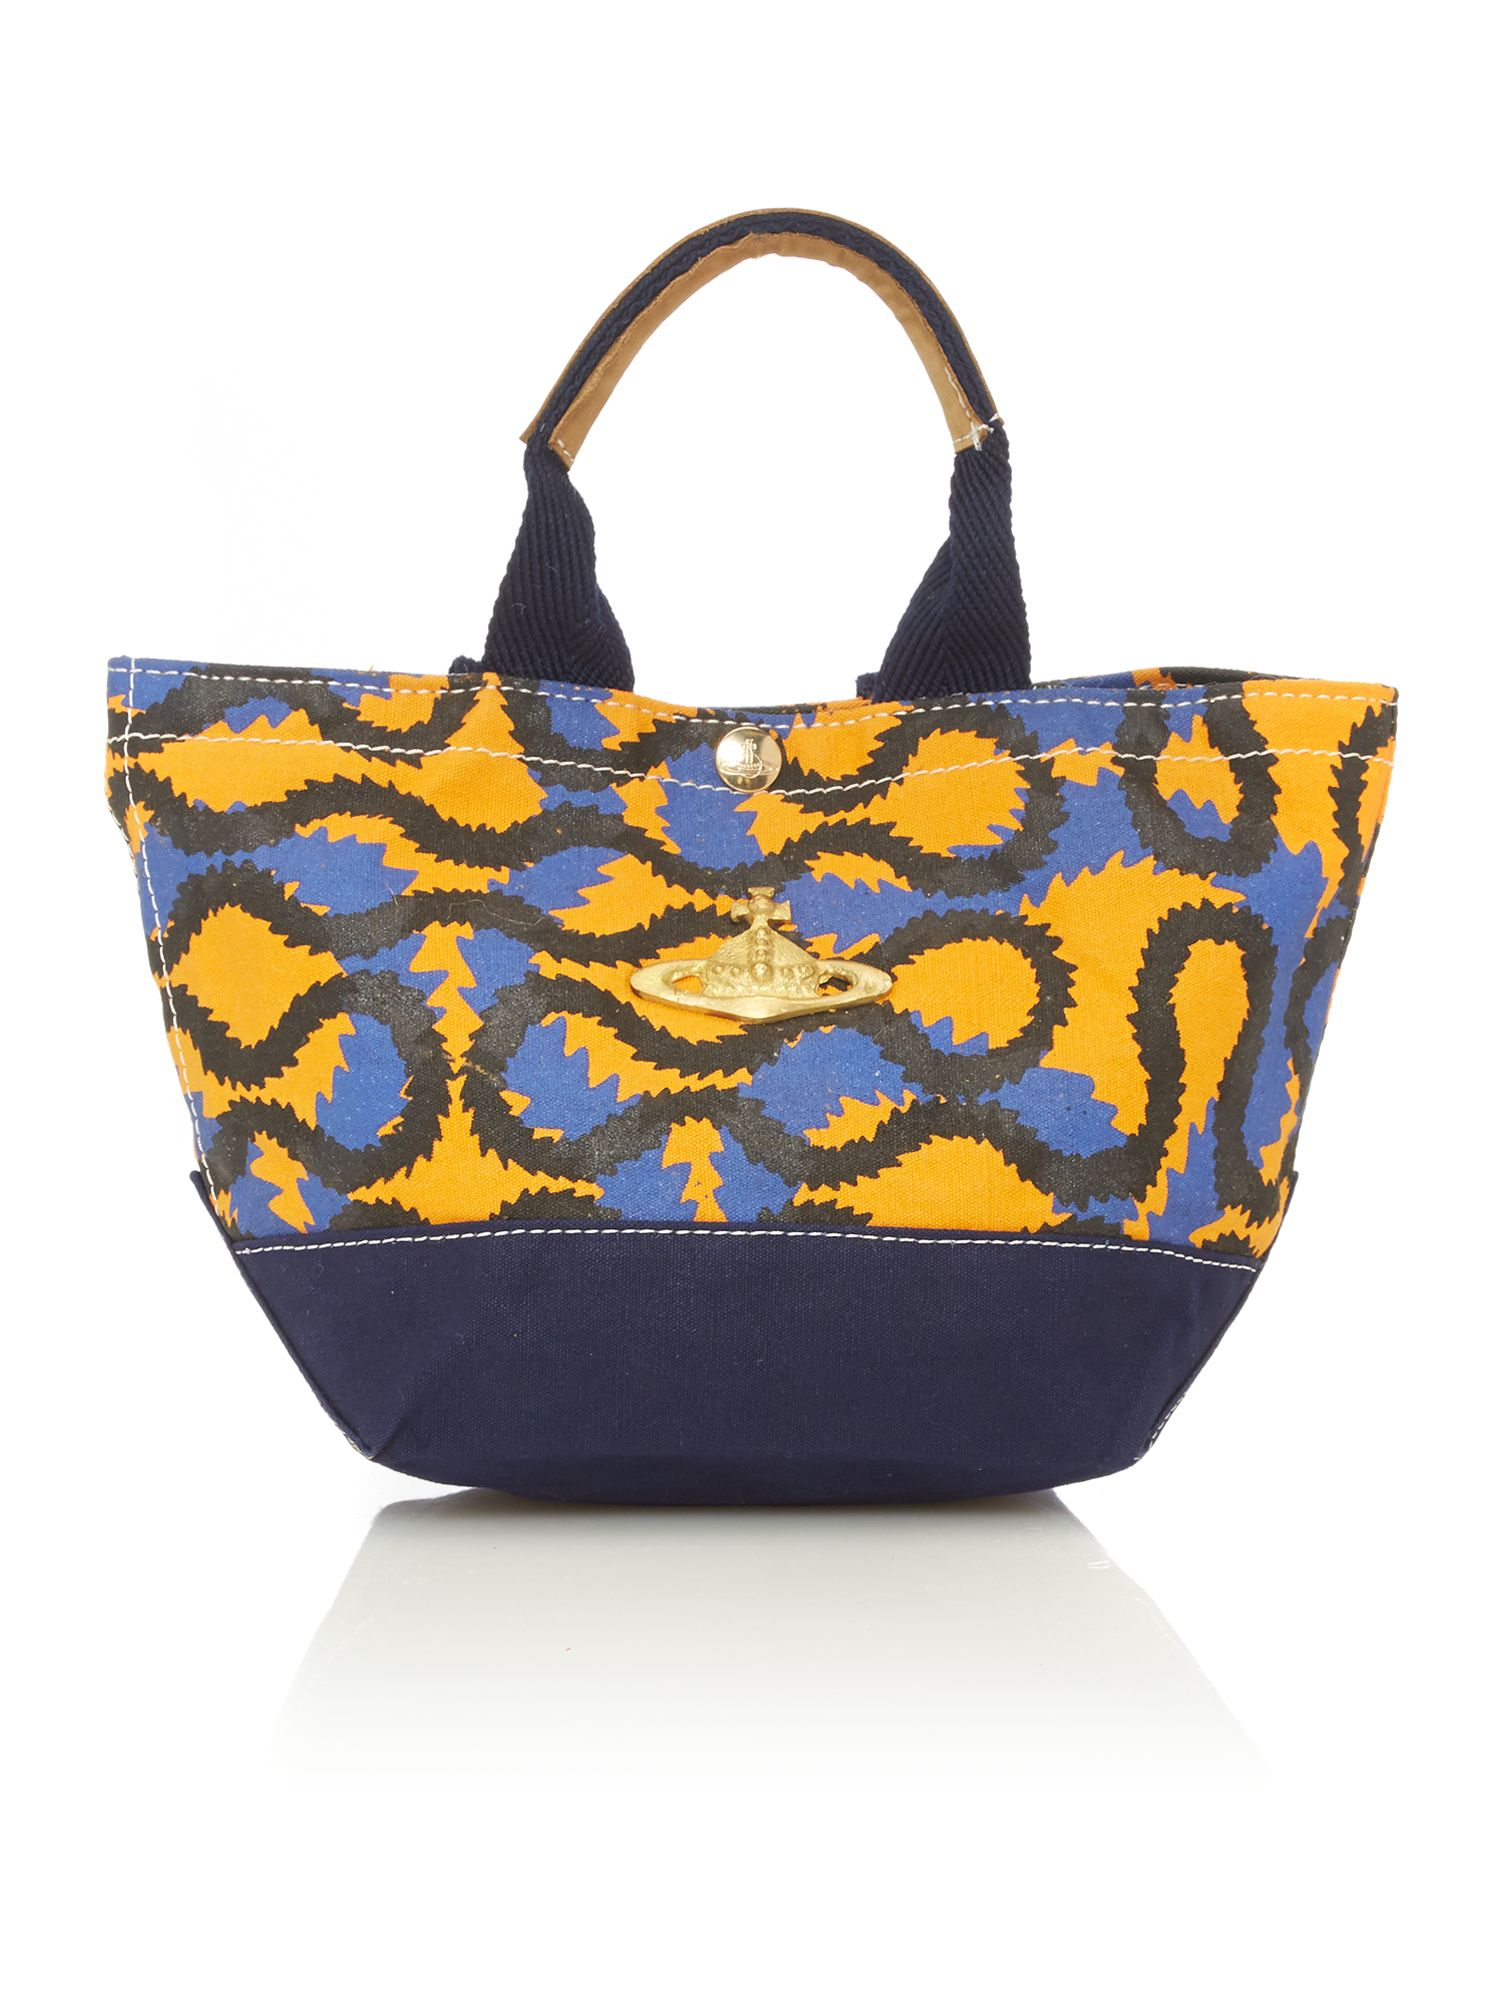 Africa multi coloured small tote bag